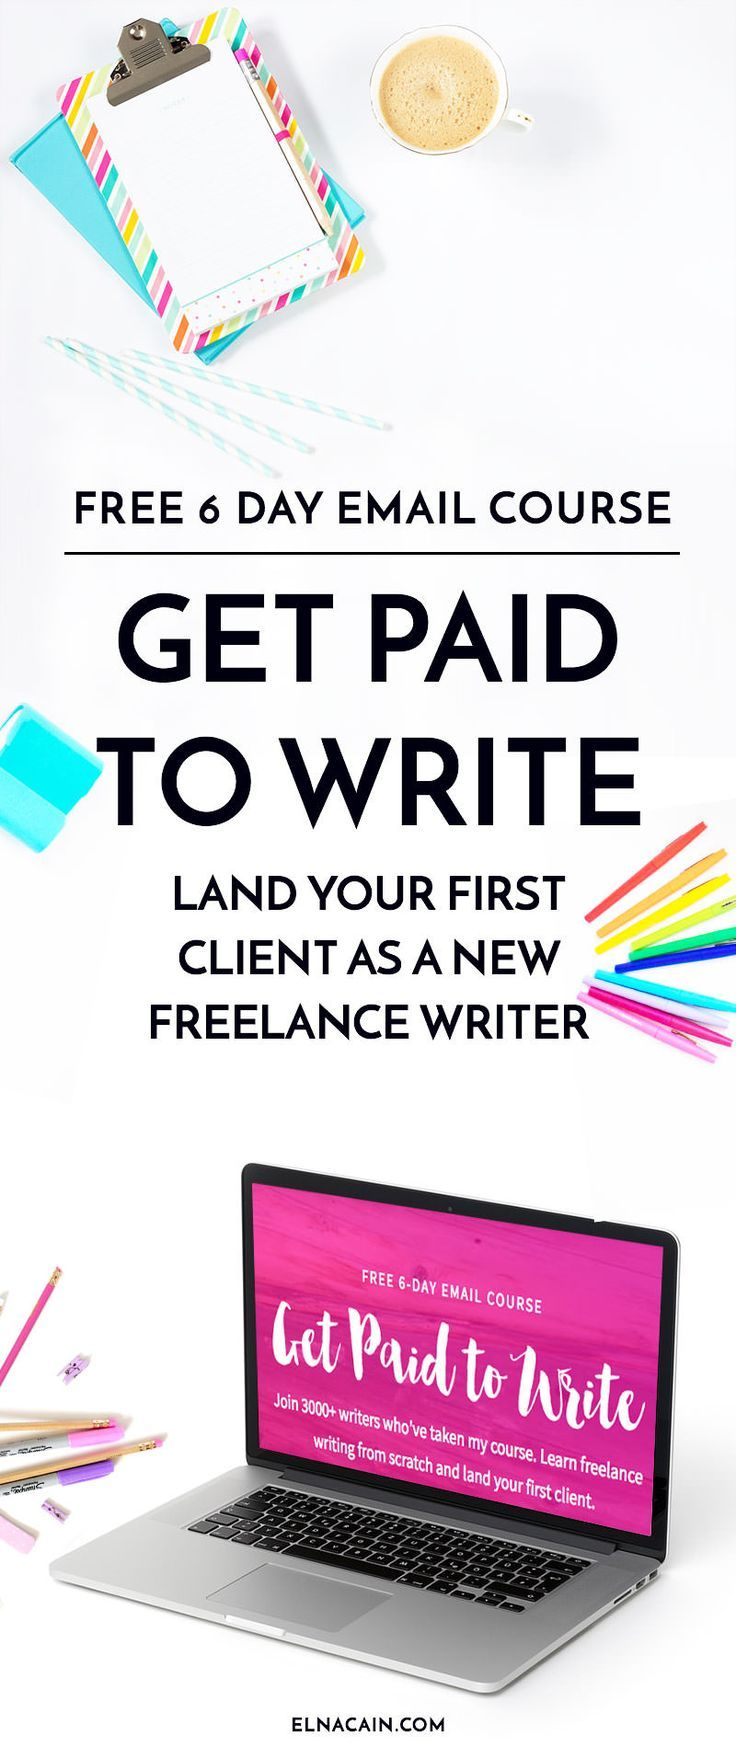 how to become a lance writer and get paid lance writers paid  get paid to write online consigli utili get paid to write online email course learn to